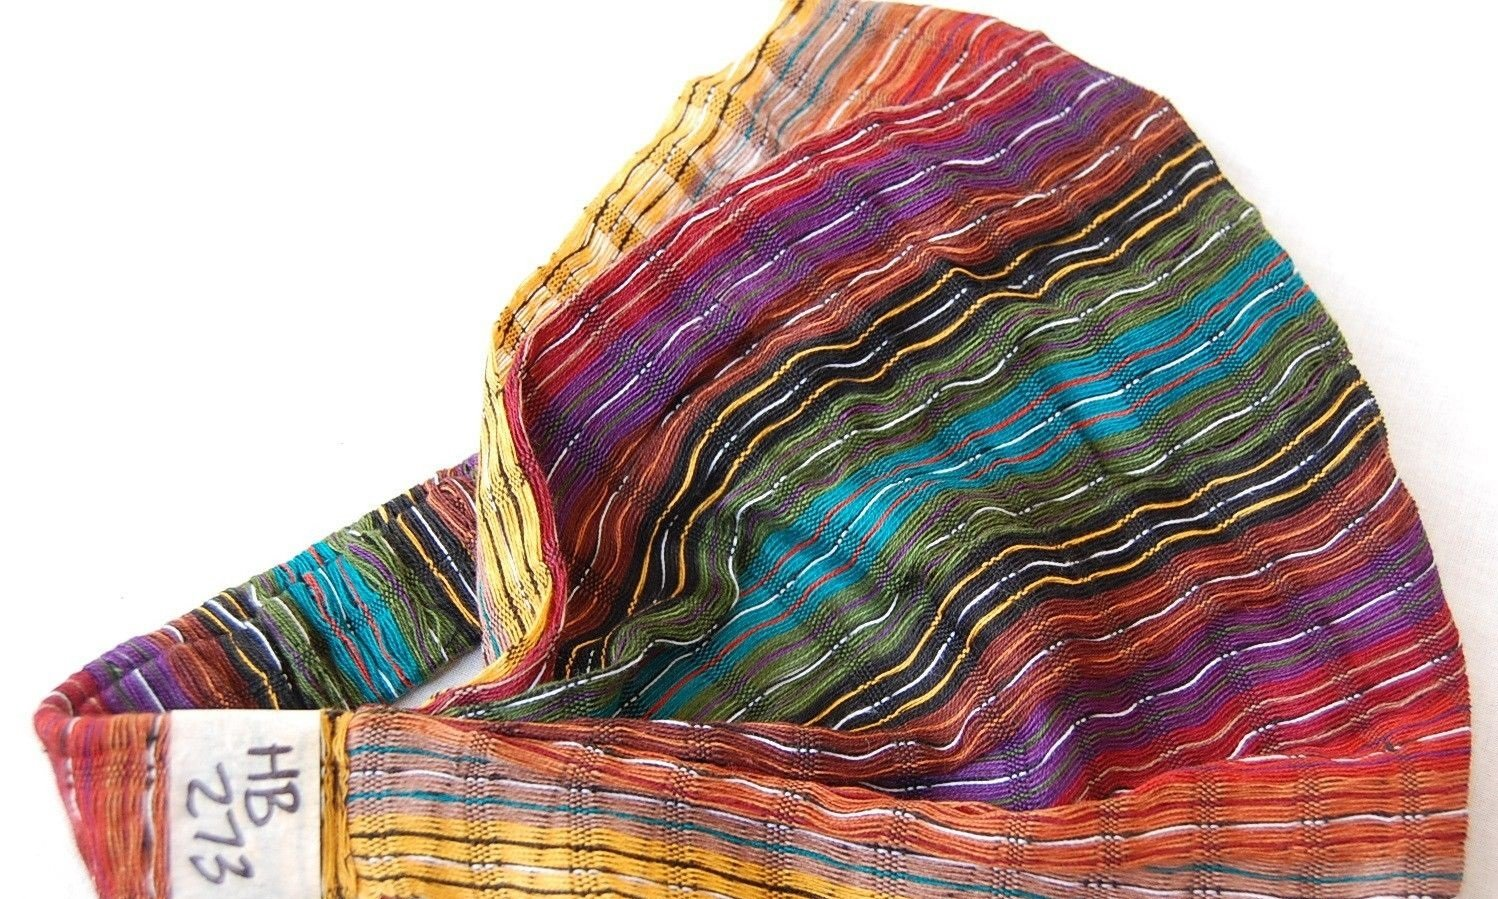 Wholesale 3 Cotton Headbands Hair Assortment Hand Woven Colorful Peru Fair Trade by Sanyork (Image #2)